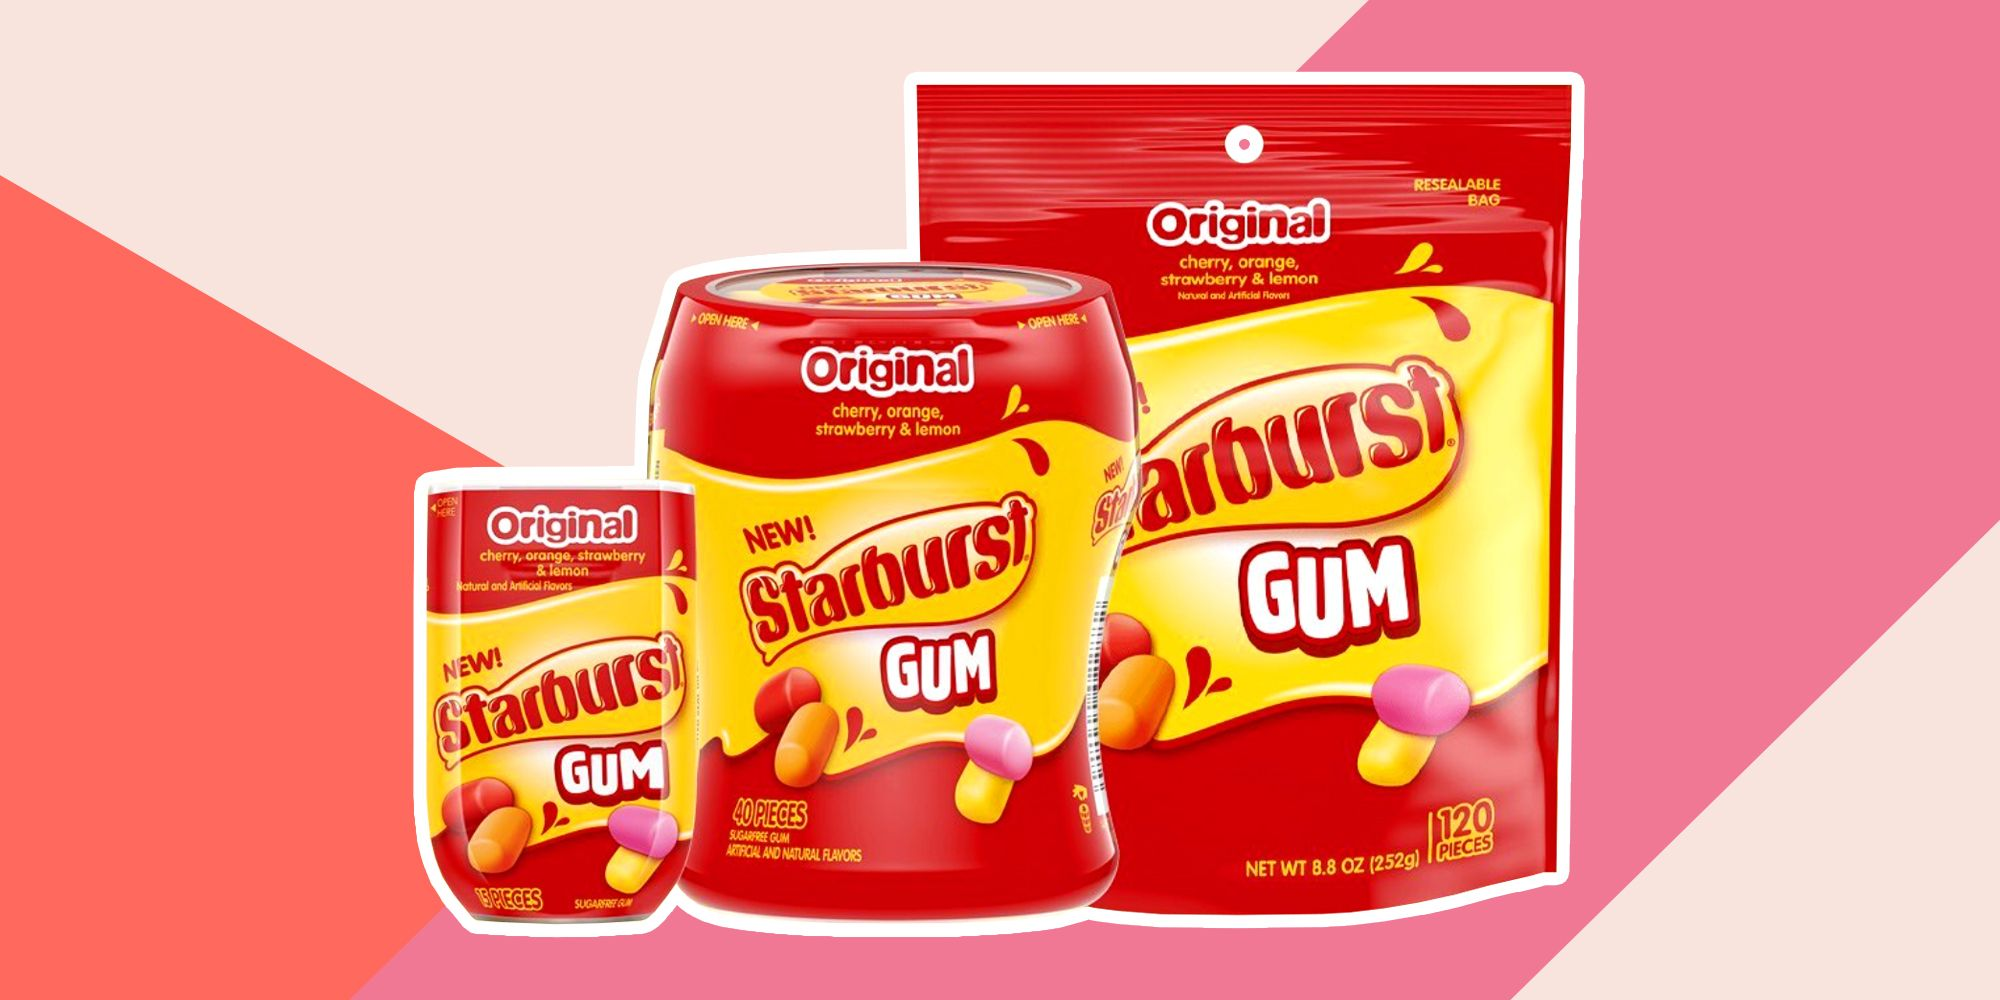 Starburst Gum Is Coming Next Year, and It's Like Never-Ending Candy